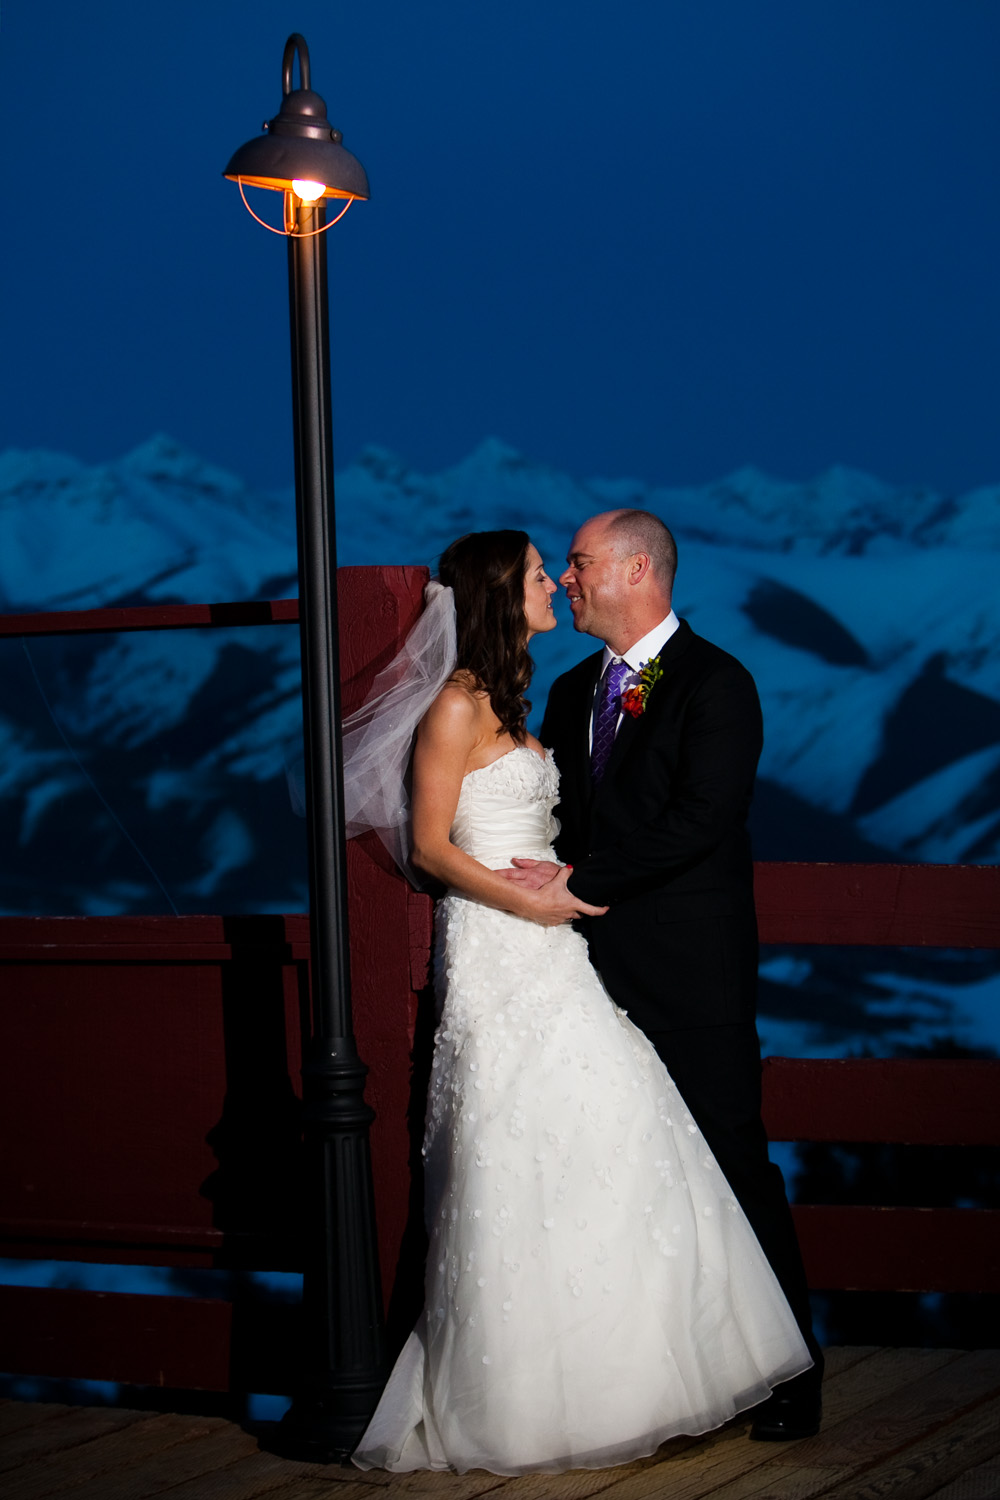 Sun_Valley_Idaho_Wedding022